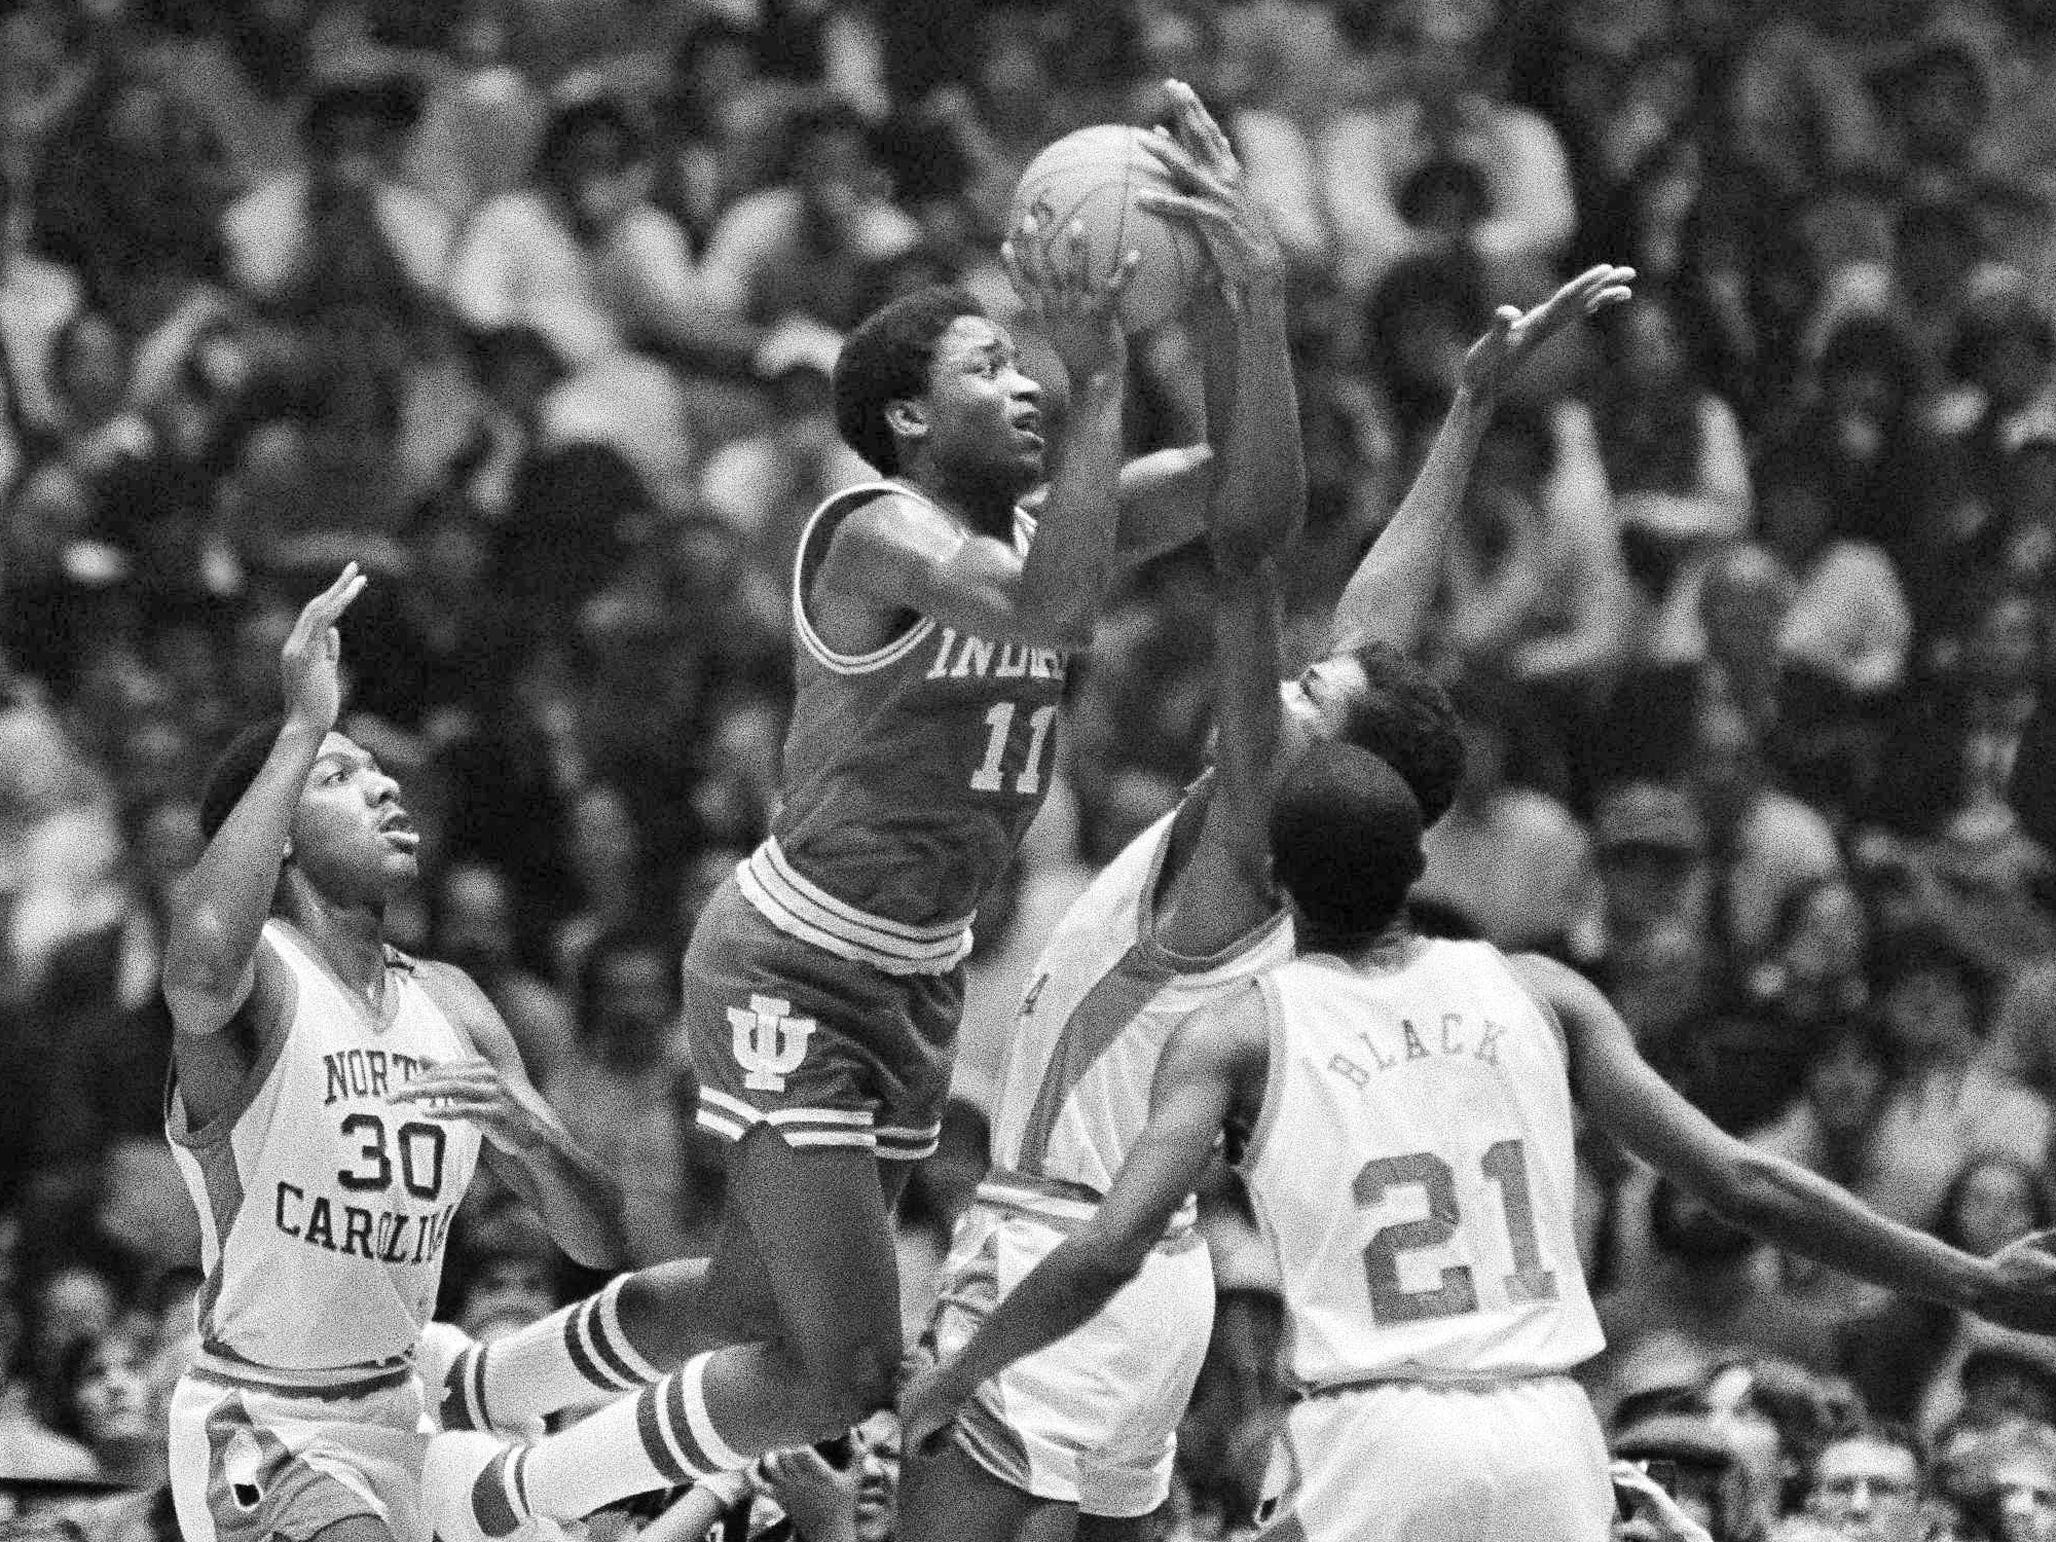 Indiana's Isiah Thomas uses jump shot over up stretched arms of University of North Carolina's Sam Perkins, as Jimmy Black (21) watches on Monday, March 31, 1981 in title game of NCAA championship in Philadelphia. Indiana won the NCAA crown by beating the Tar Heels, 63-50, and Thomas was selected the most valuable player.